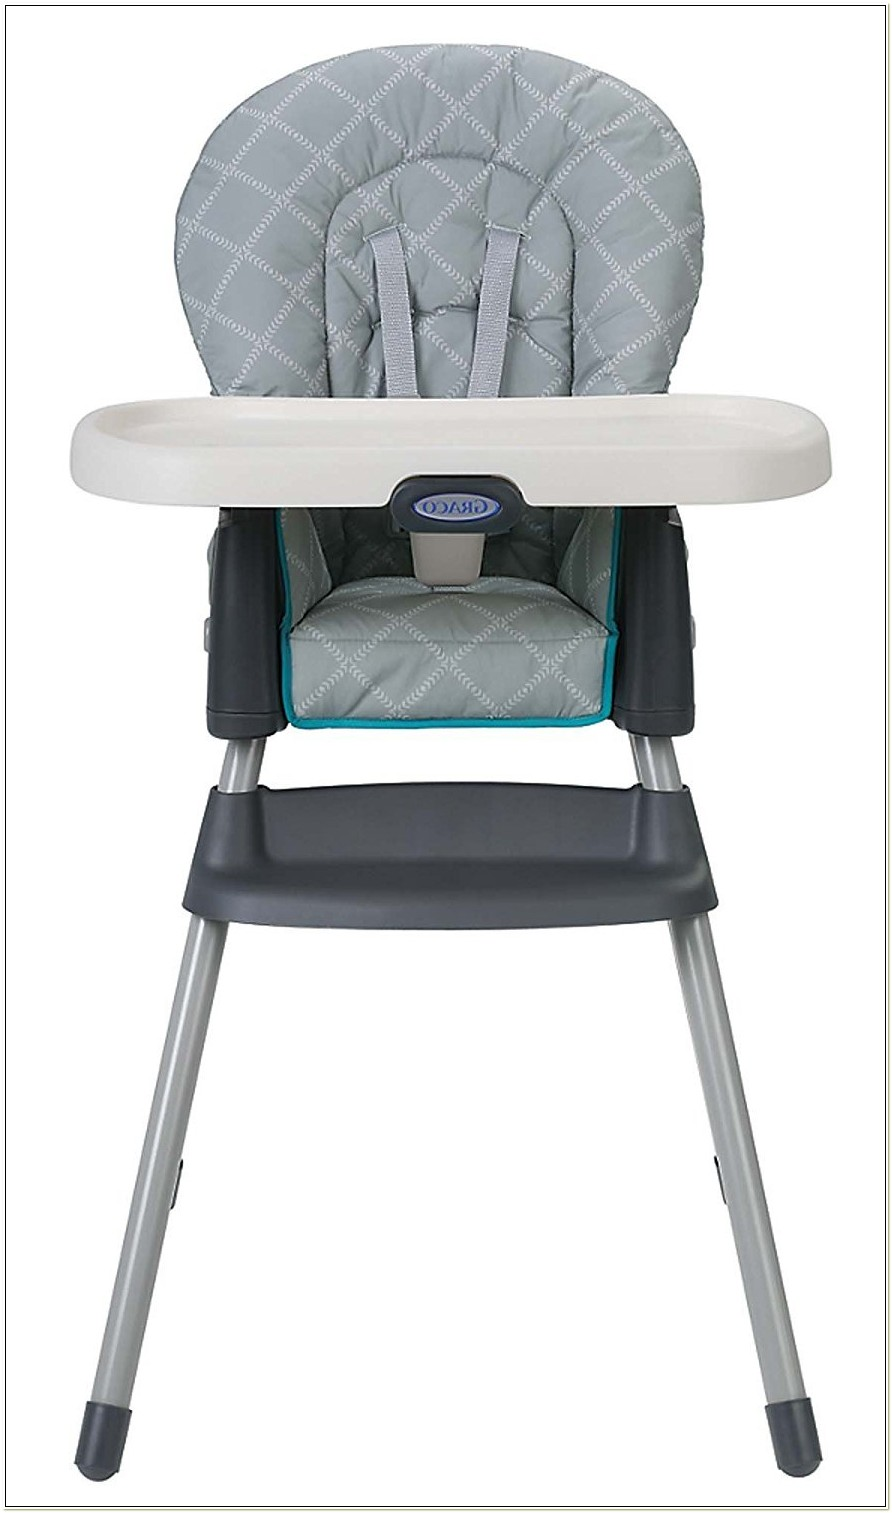 Graco Simpleswitch High Chair Zuba